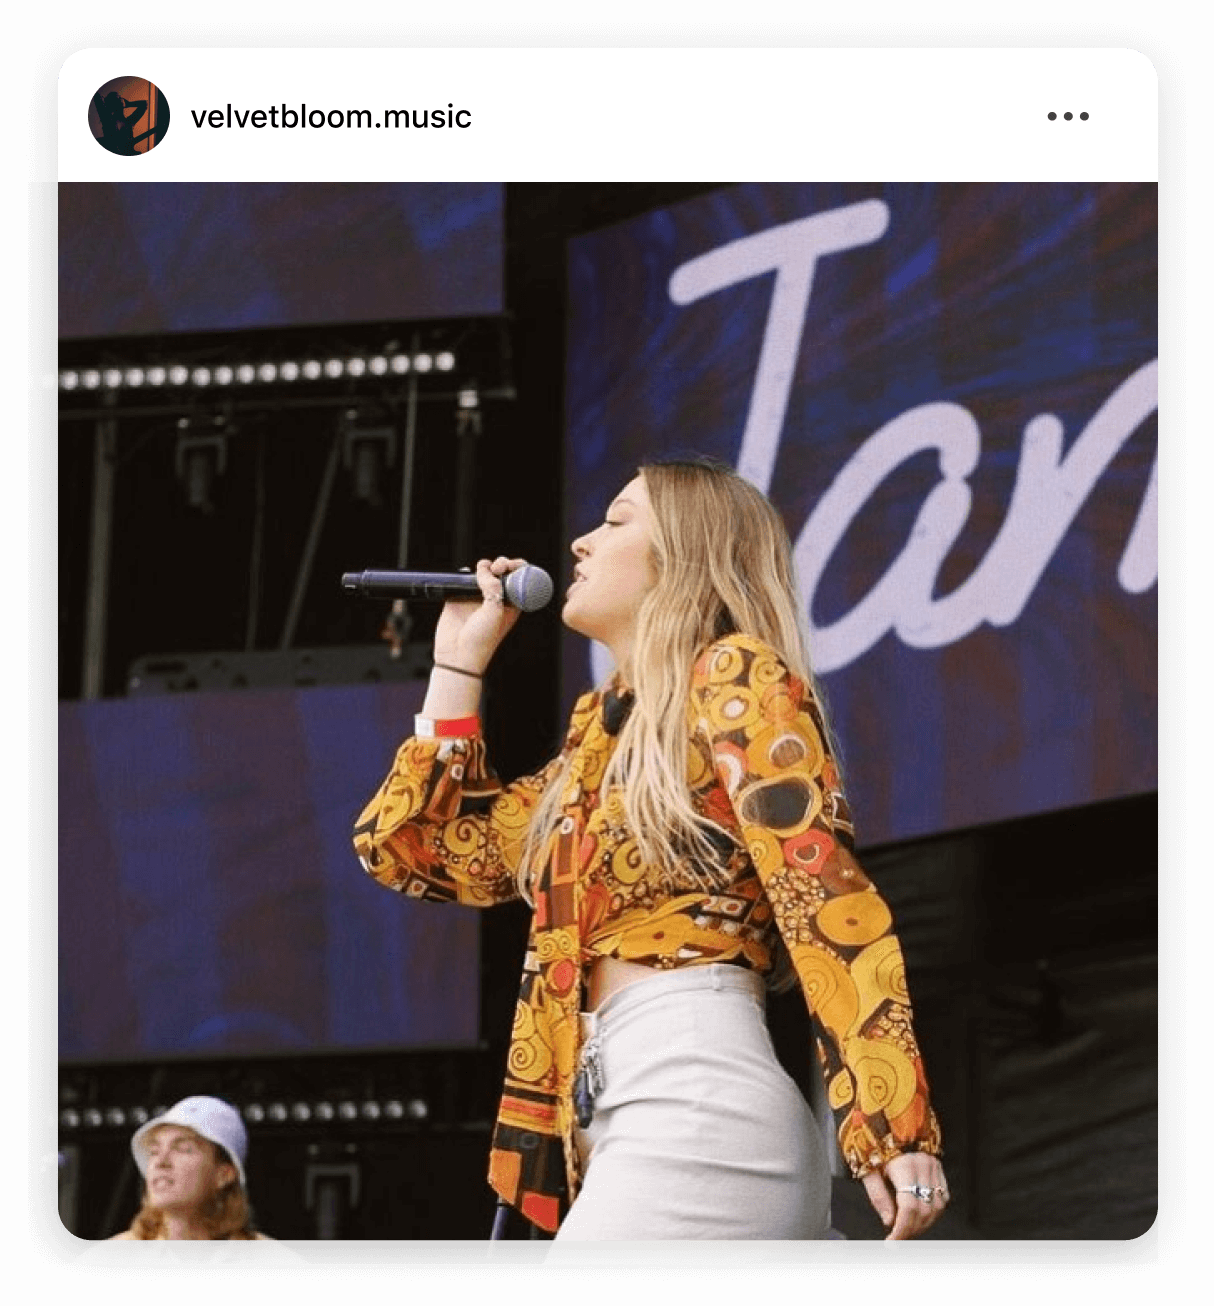 Marketing your music on Instagram